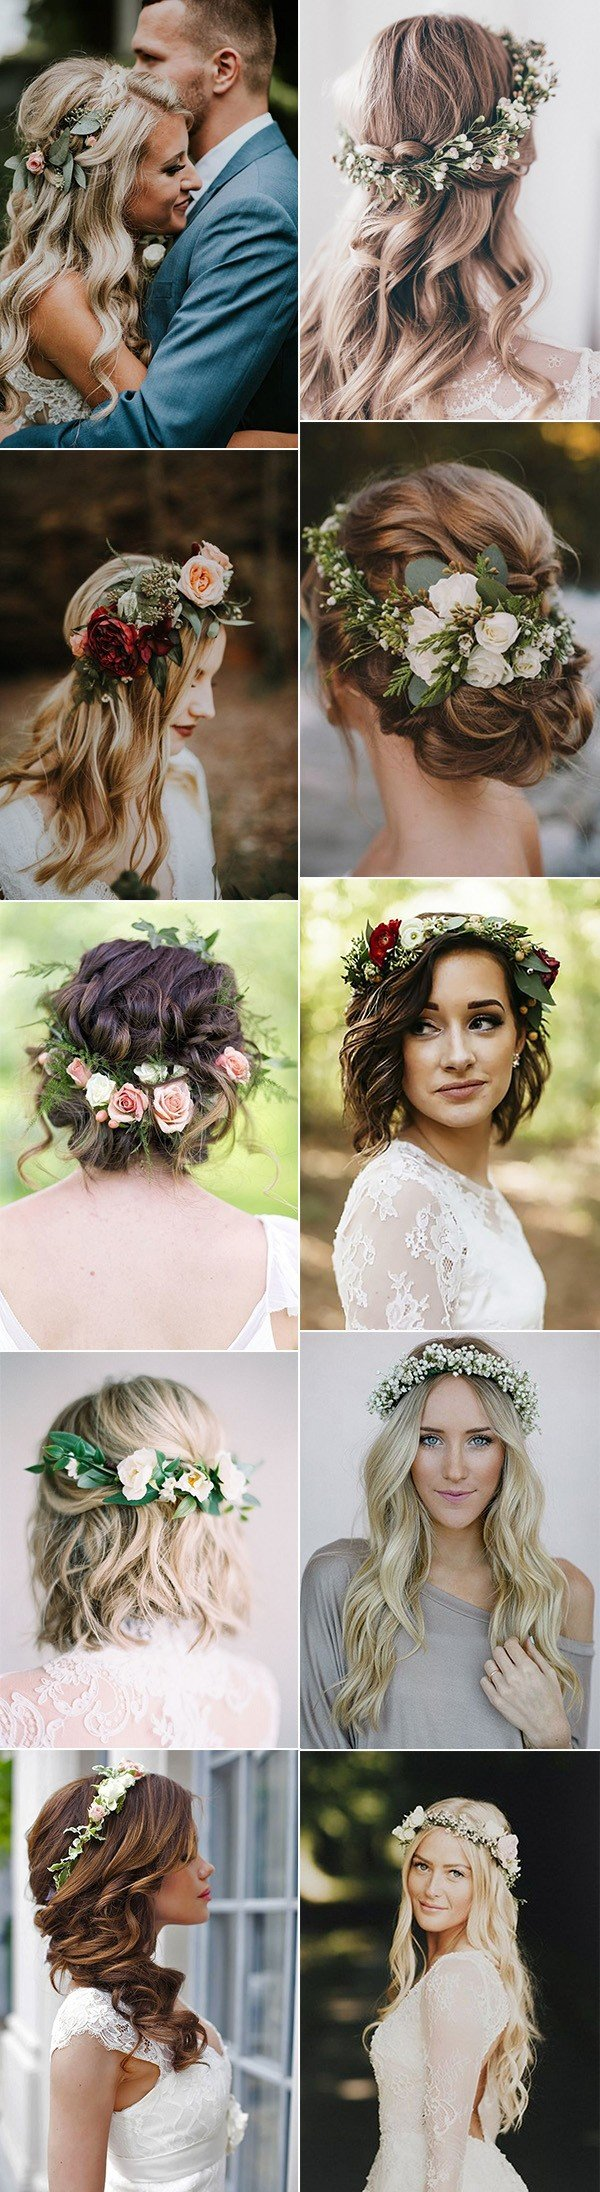 trending wedding hairstyles with flower crowns for 2018